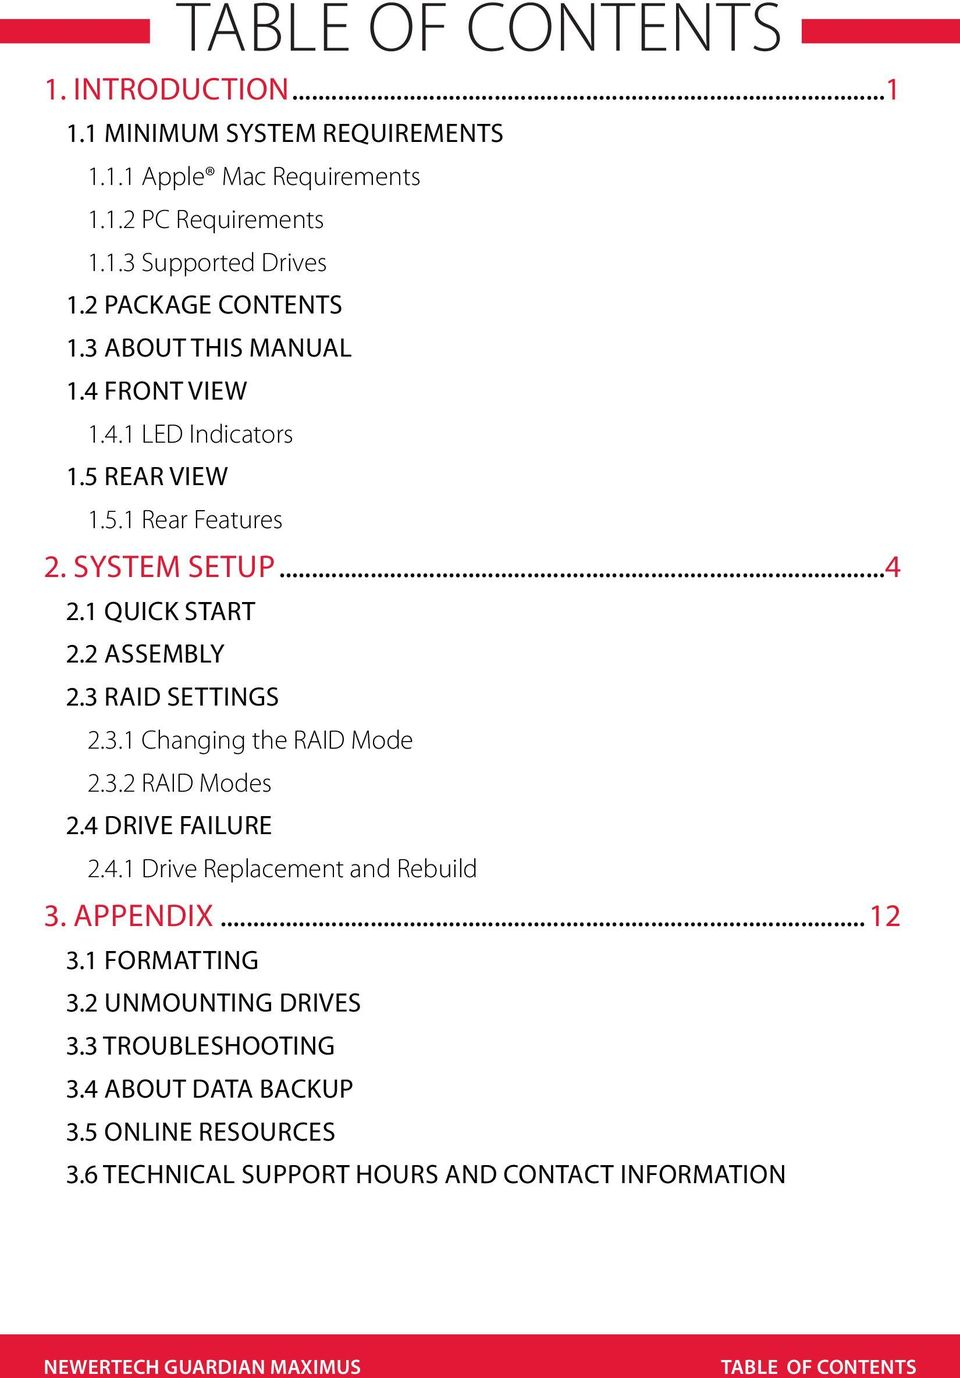 3 RAID SETTINGS 2.3.1 Changing the RAID Mode 2.3.2 RAID Modes 2.4 DRIVE FAILURE 2.4.1 Drive Replacement and Rebuild 3. APPENDIX...12 3.1 FORMATTING 3.